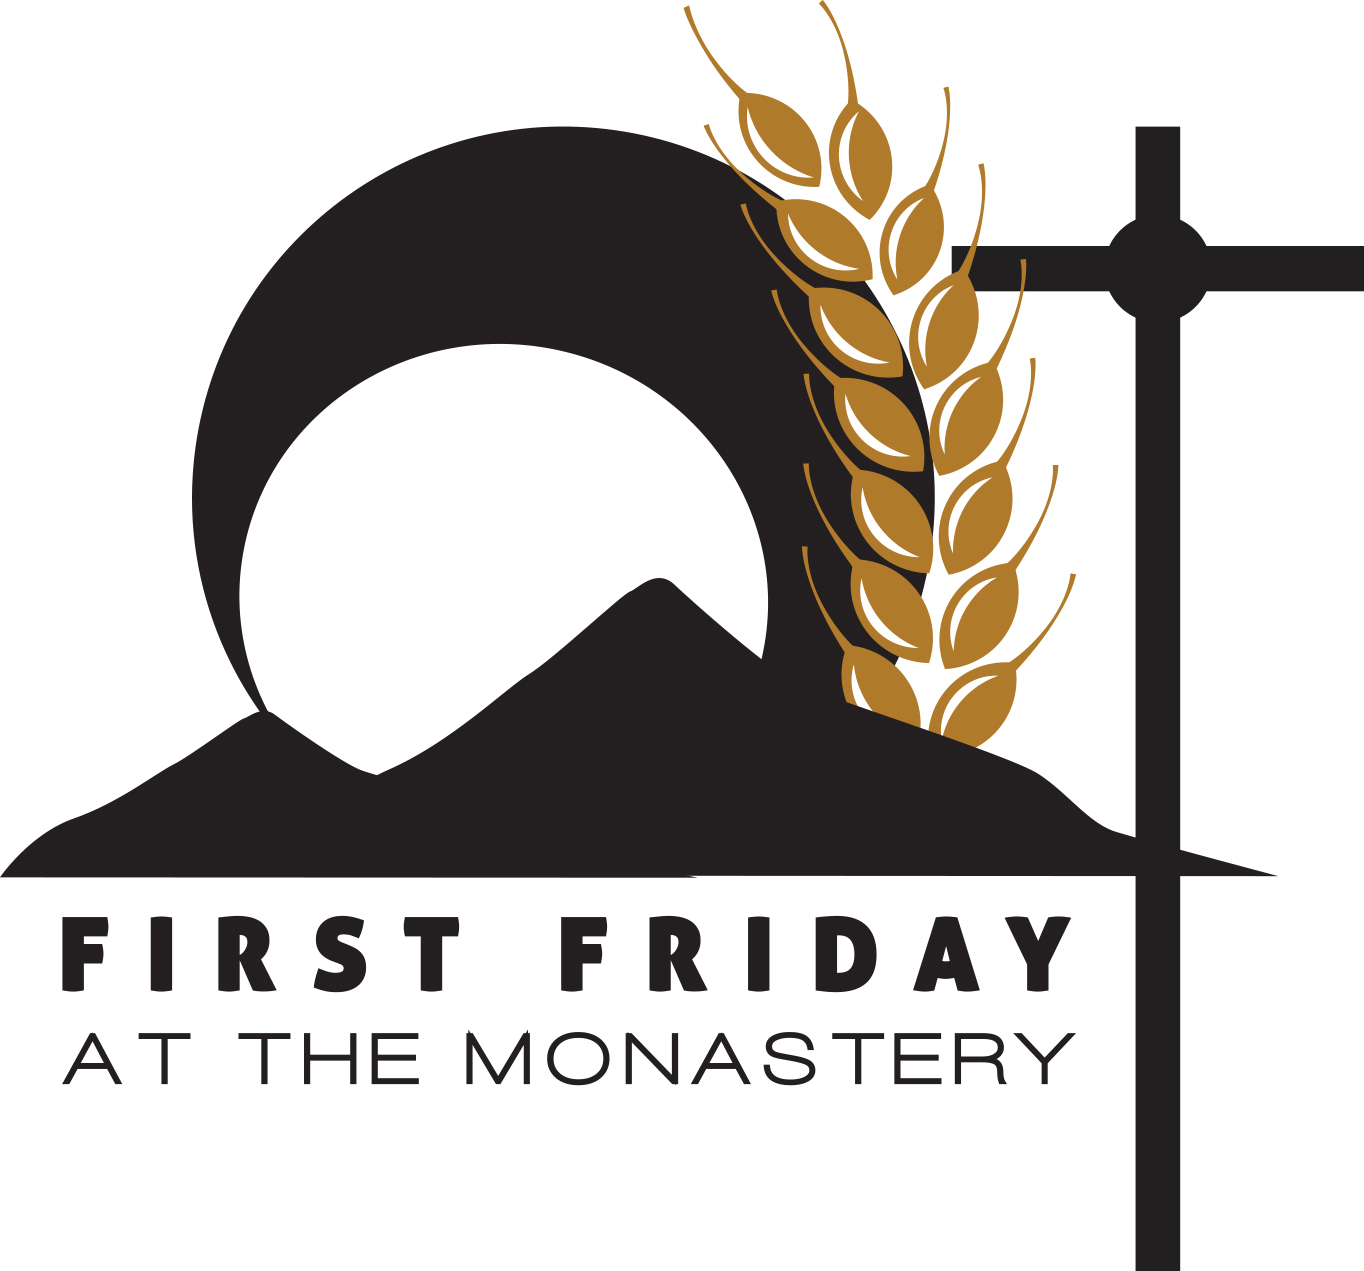 First Friday at the Monastery - MARCH